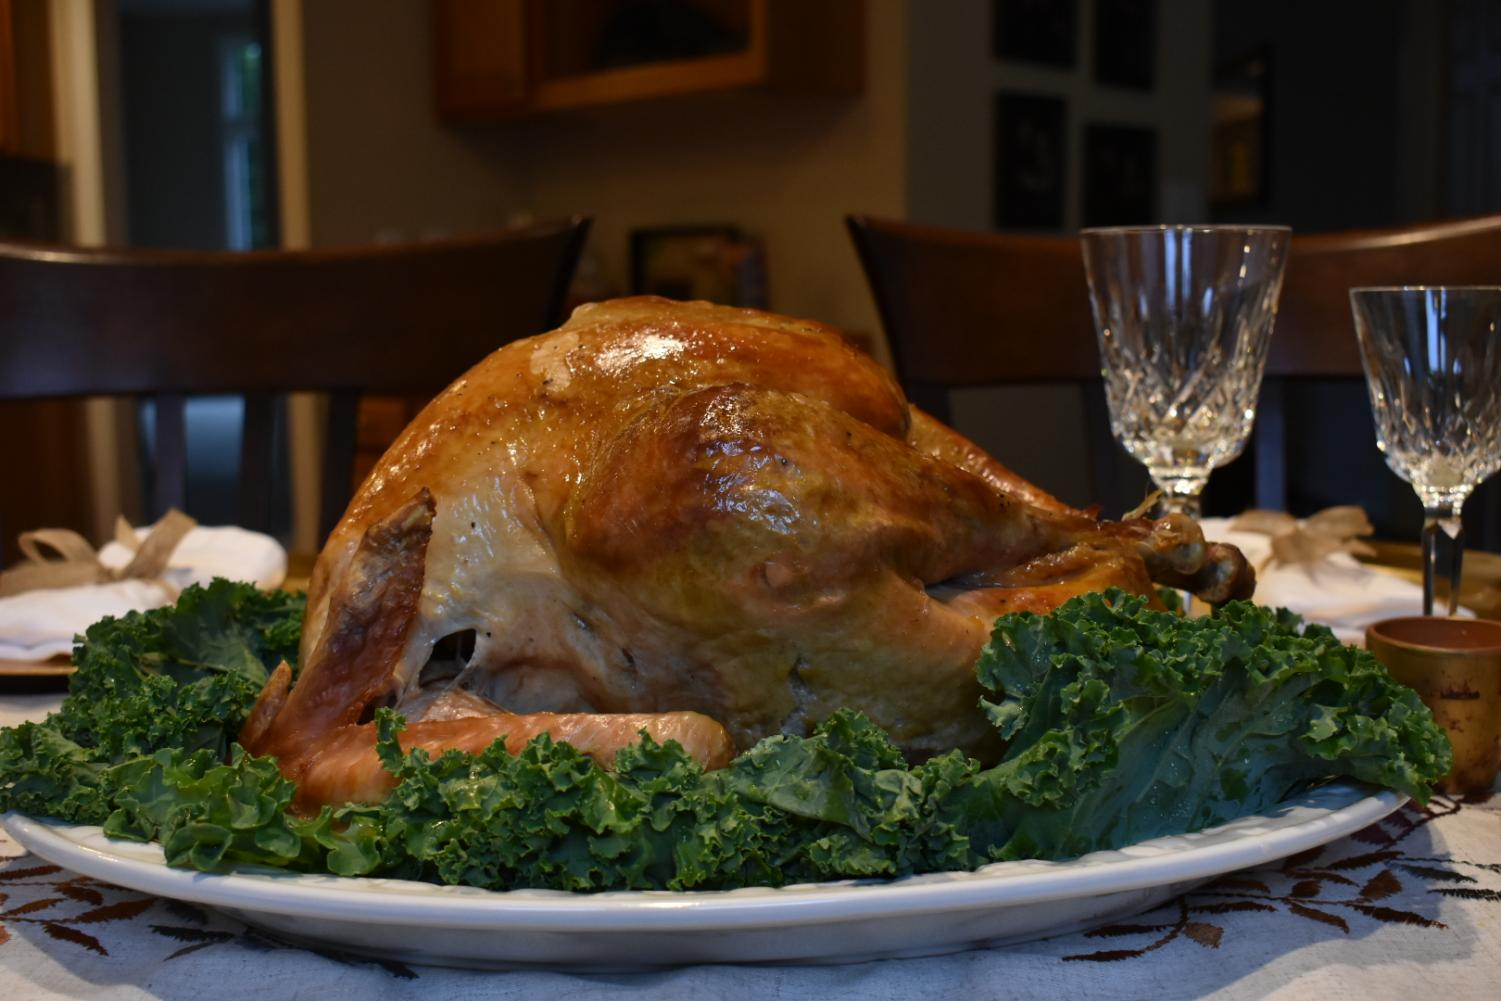 FALL FOODS: November brings to mind Thanksgiving feasts and other comfort food.